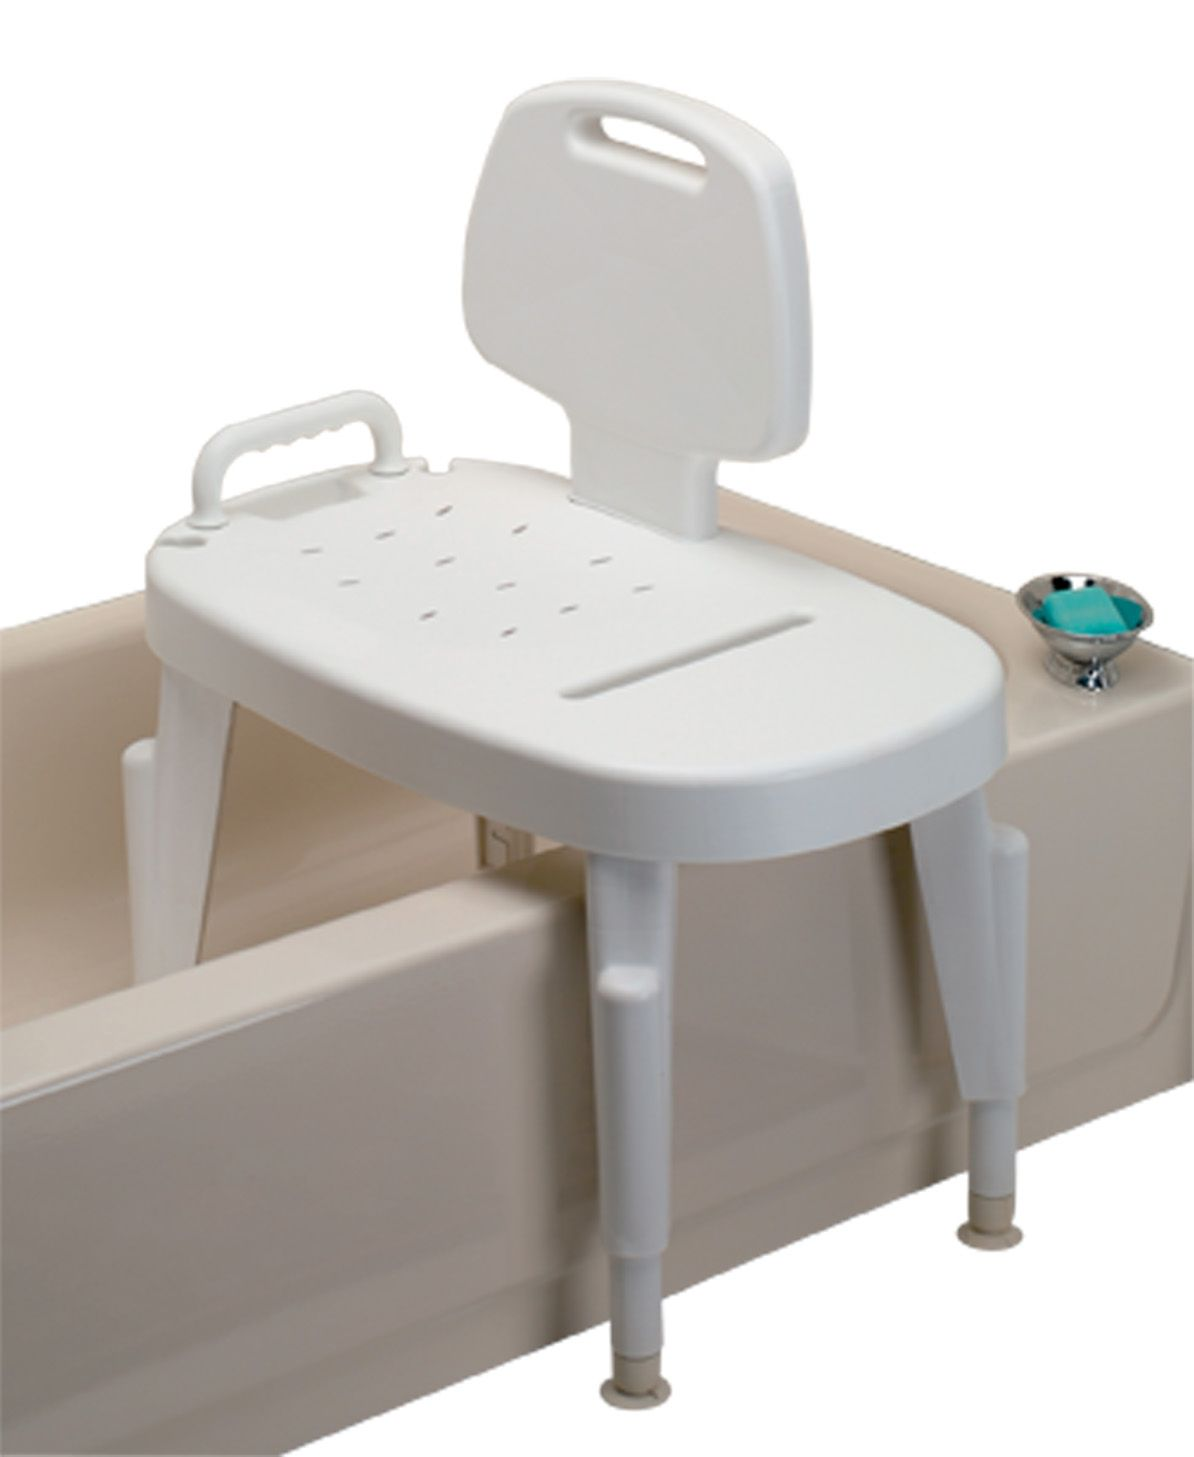 transfer bench shower chair plastic with wooden legs india bath safe and adjustable